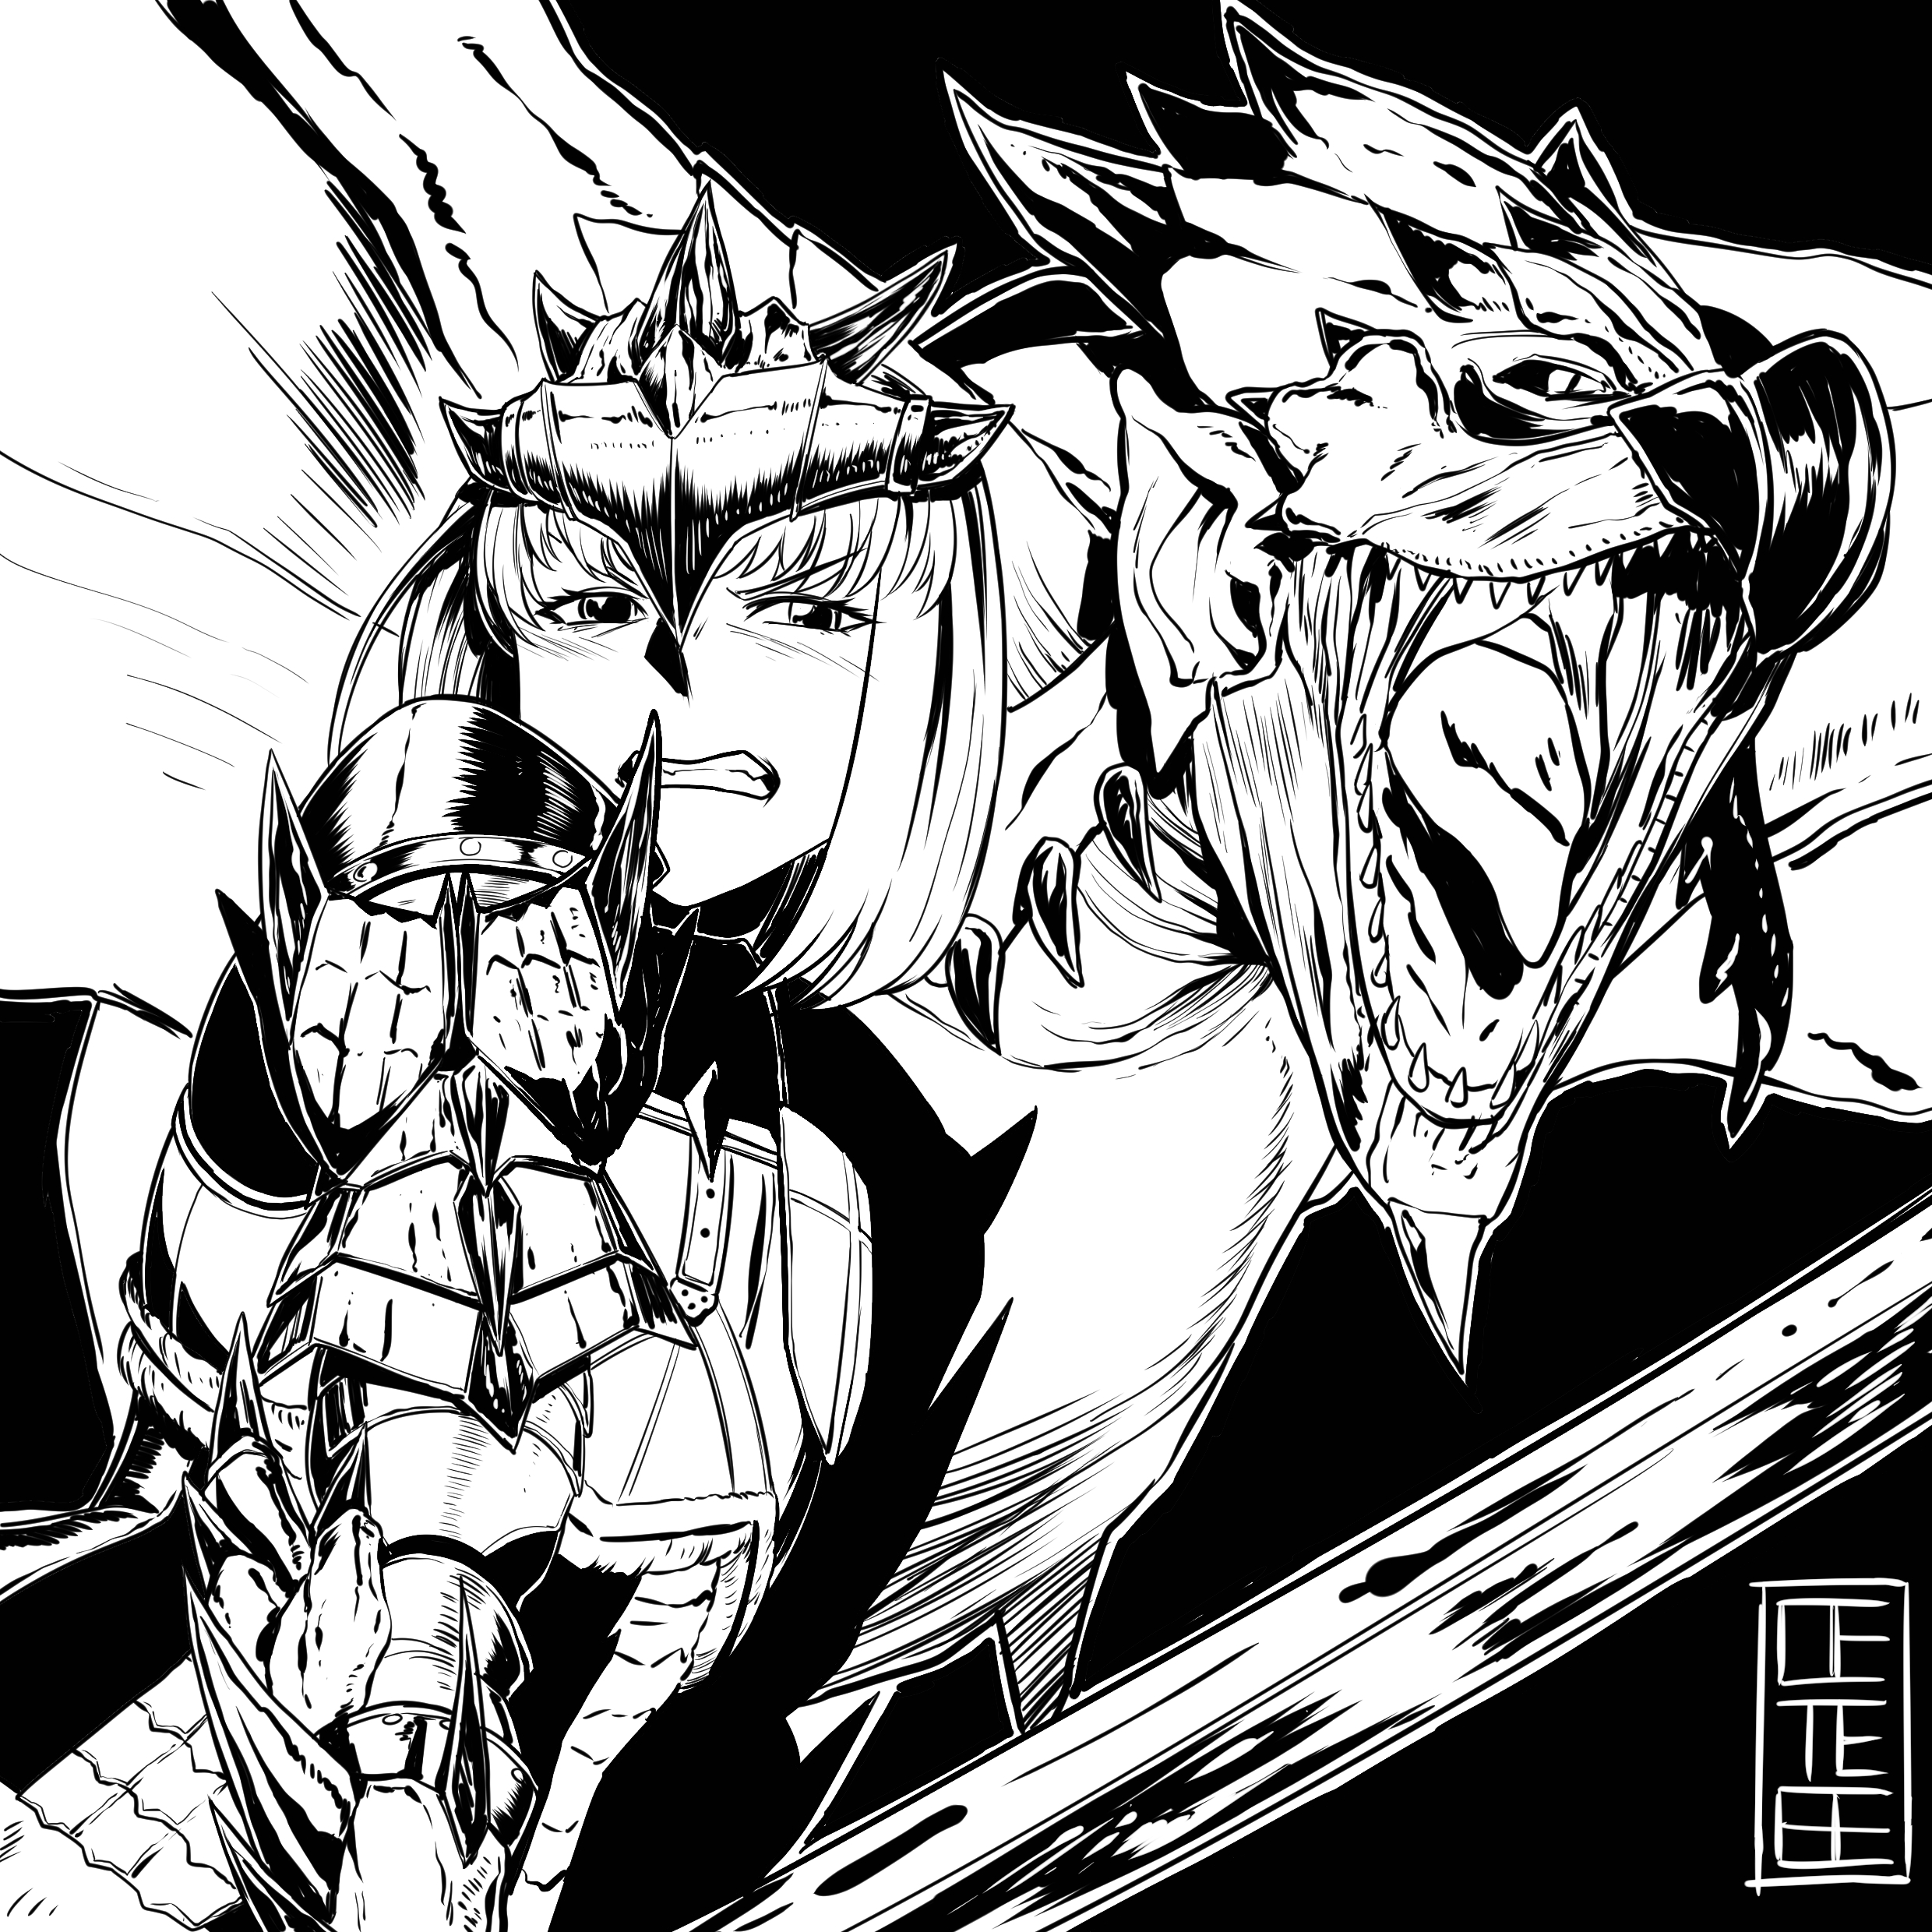 Rathalos And Rathalos Monster Hunter And 1 More Drawn By Cete